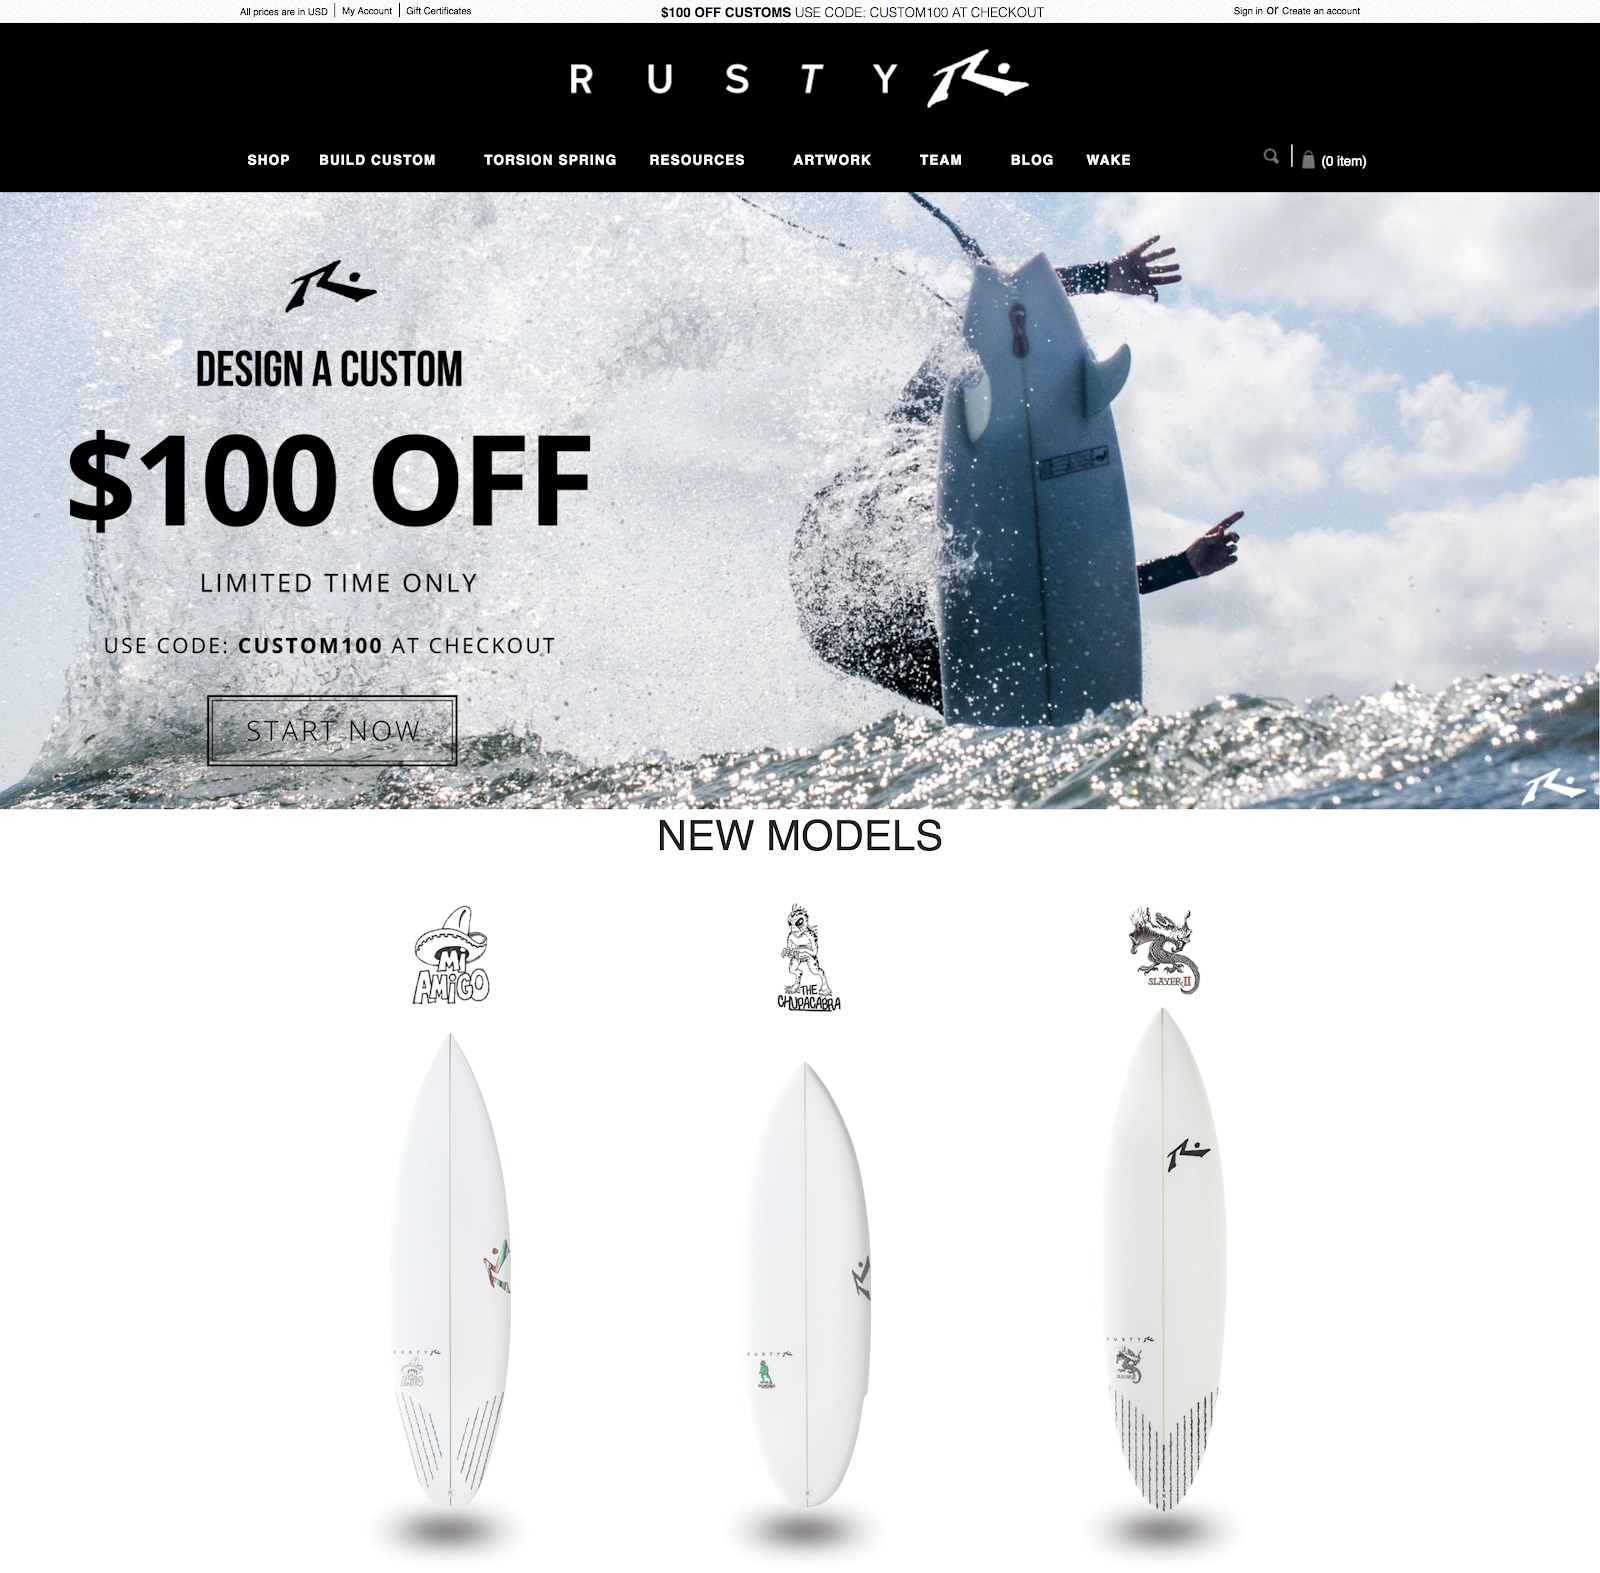 ecommerce design awards rusty surfboards